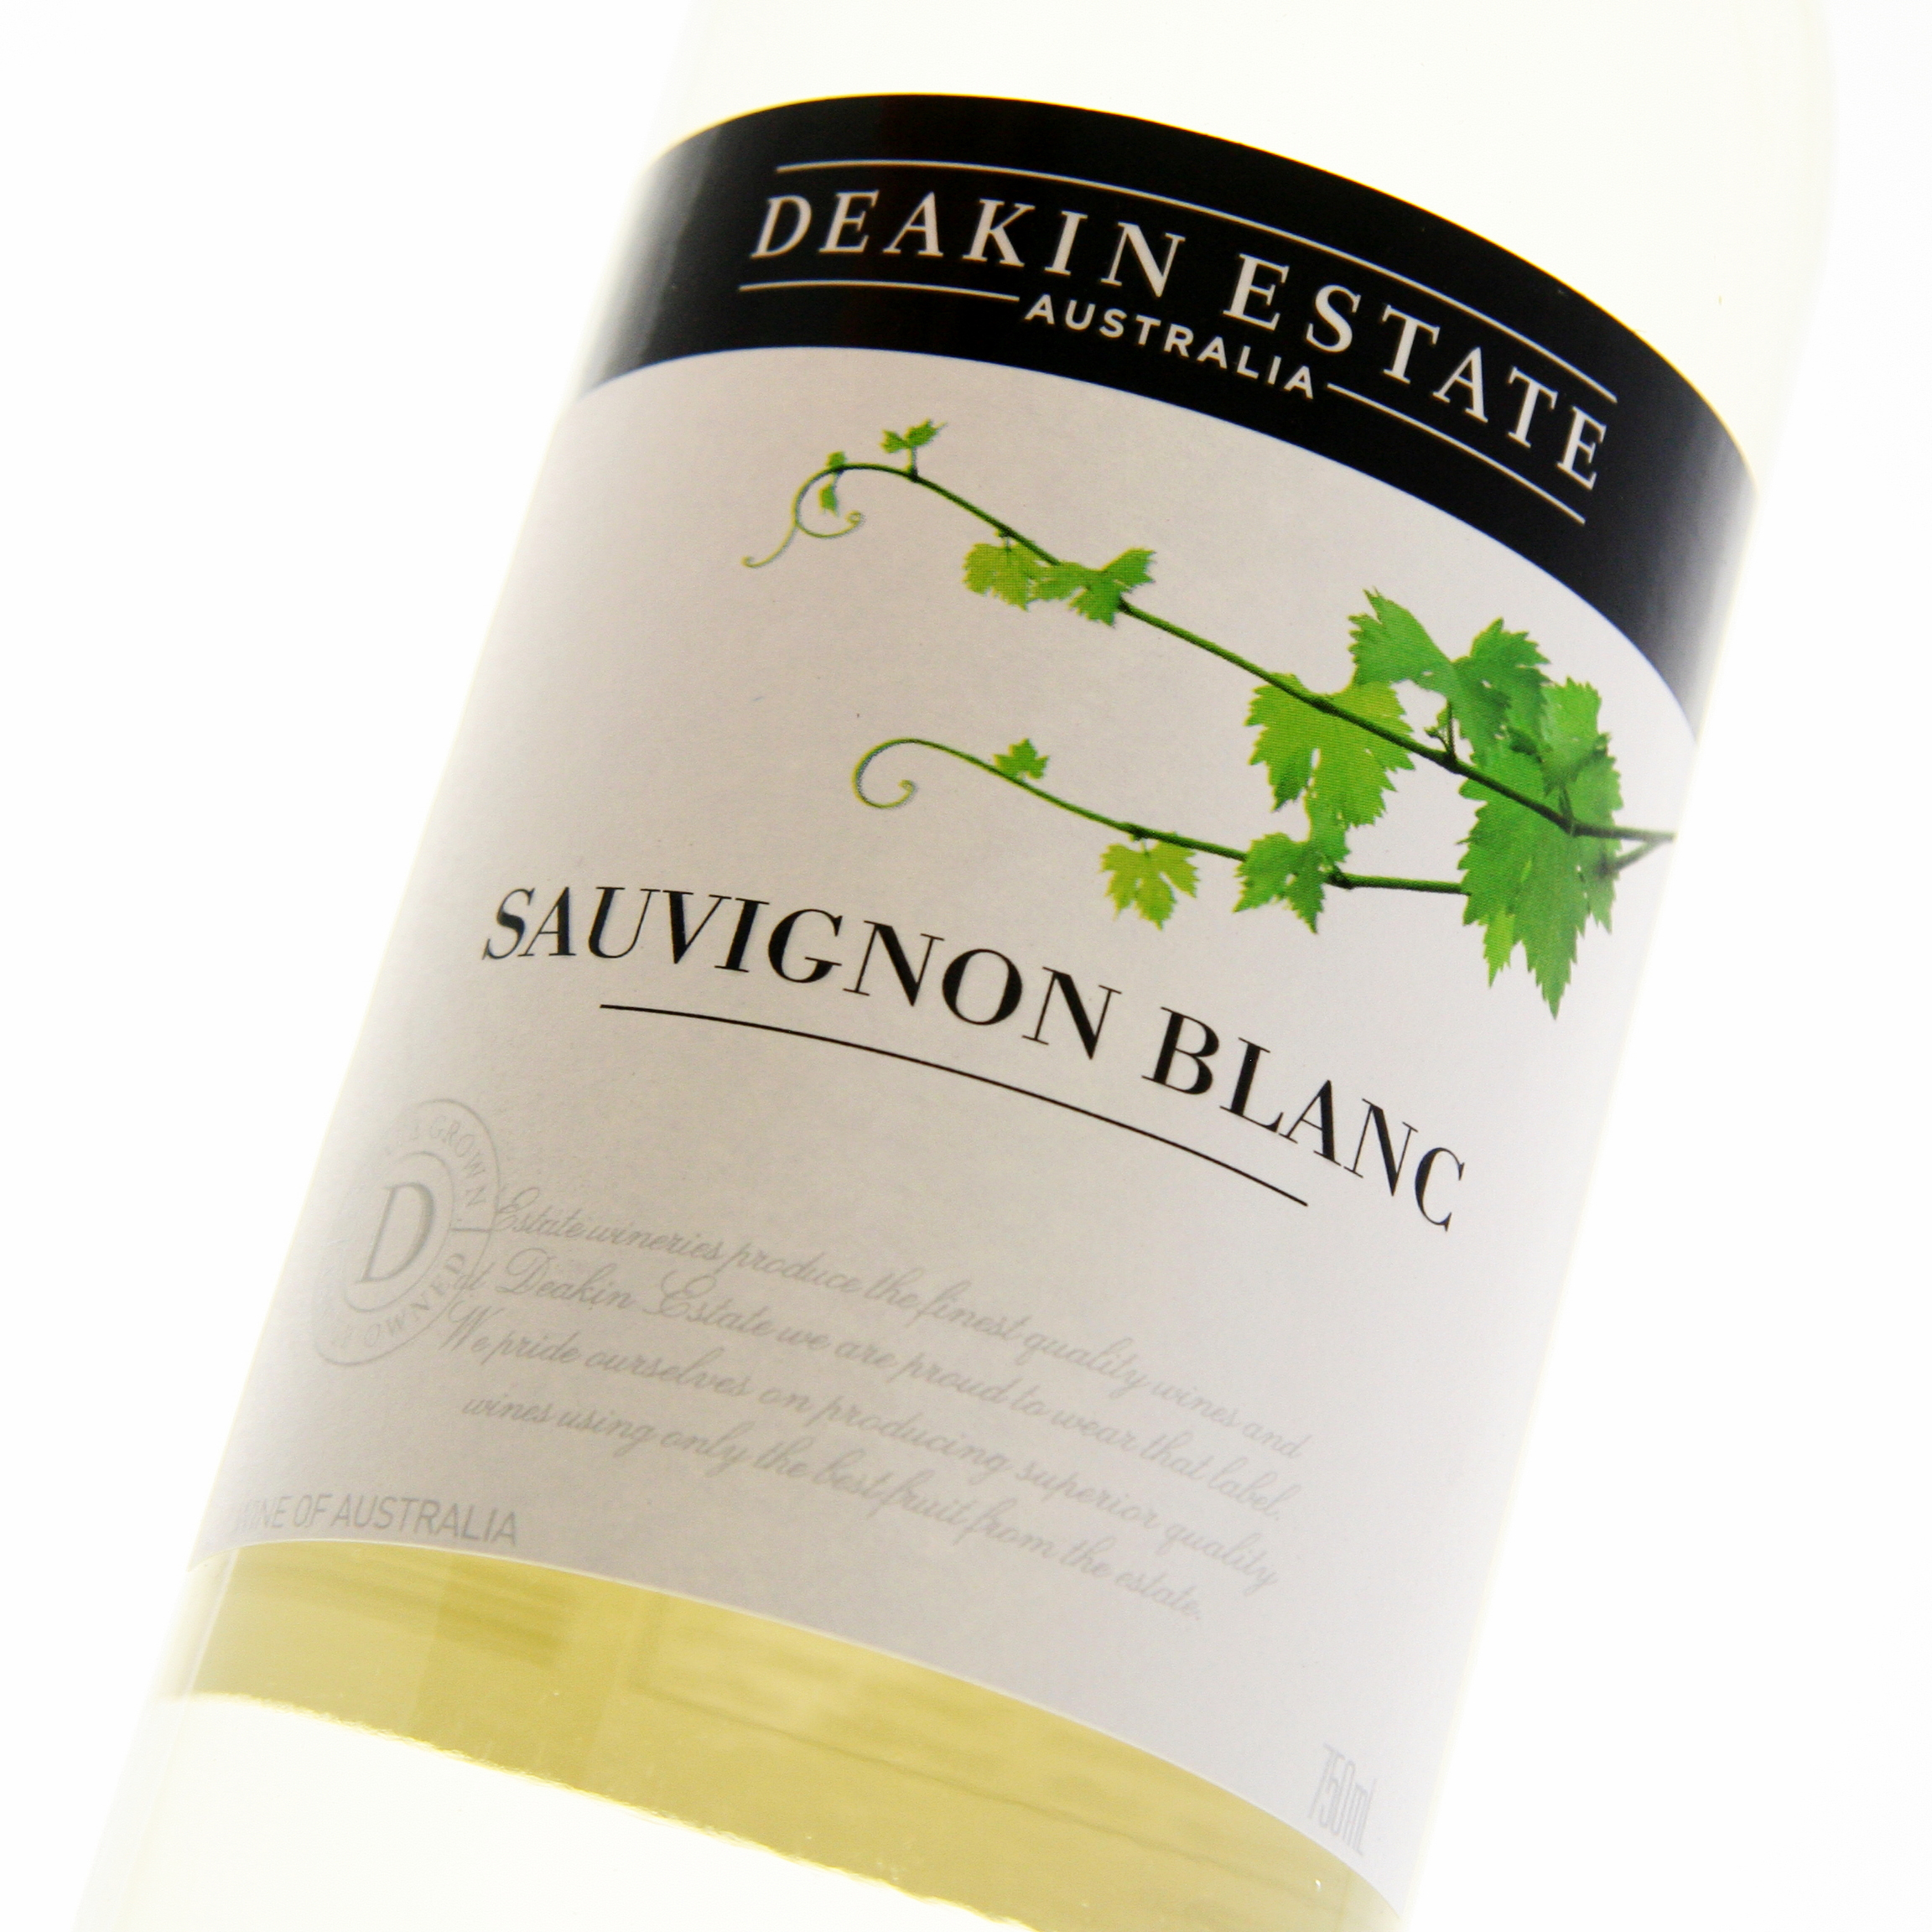 Deakin Estate - Sauvignon Blanc 2018 6x 75cl Bottles